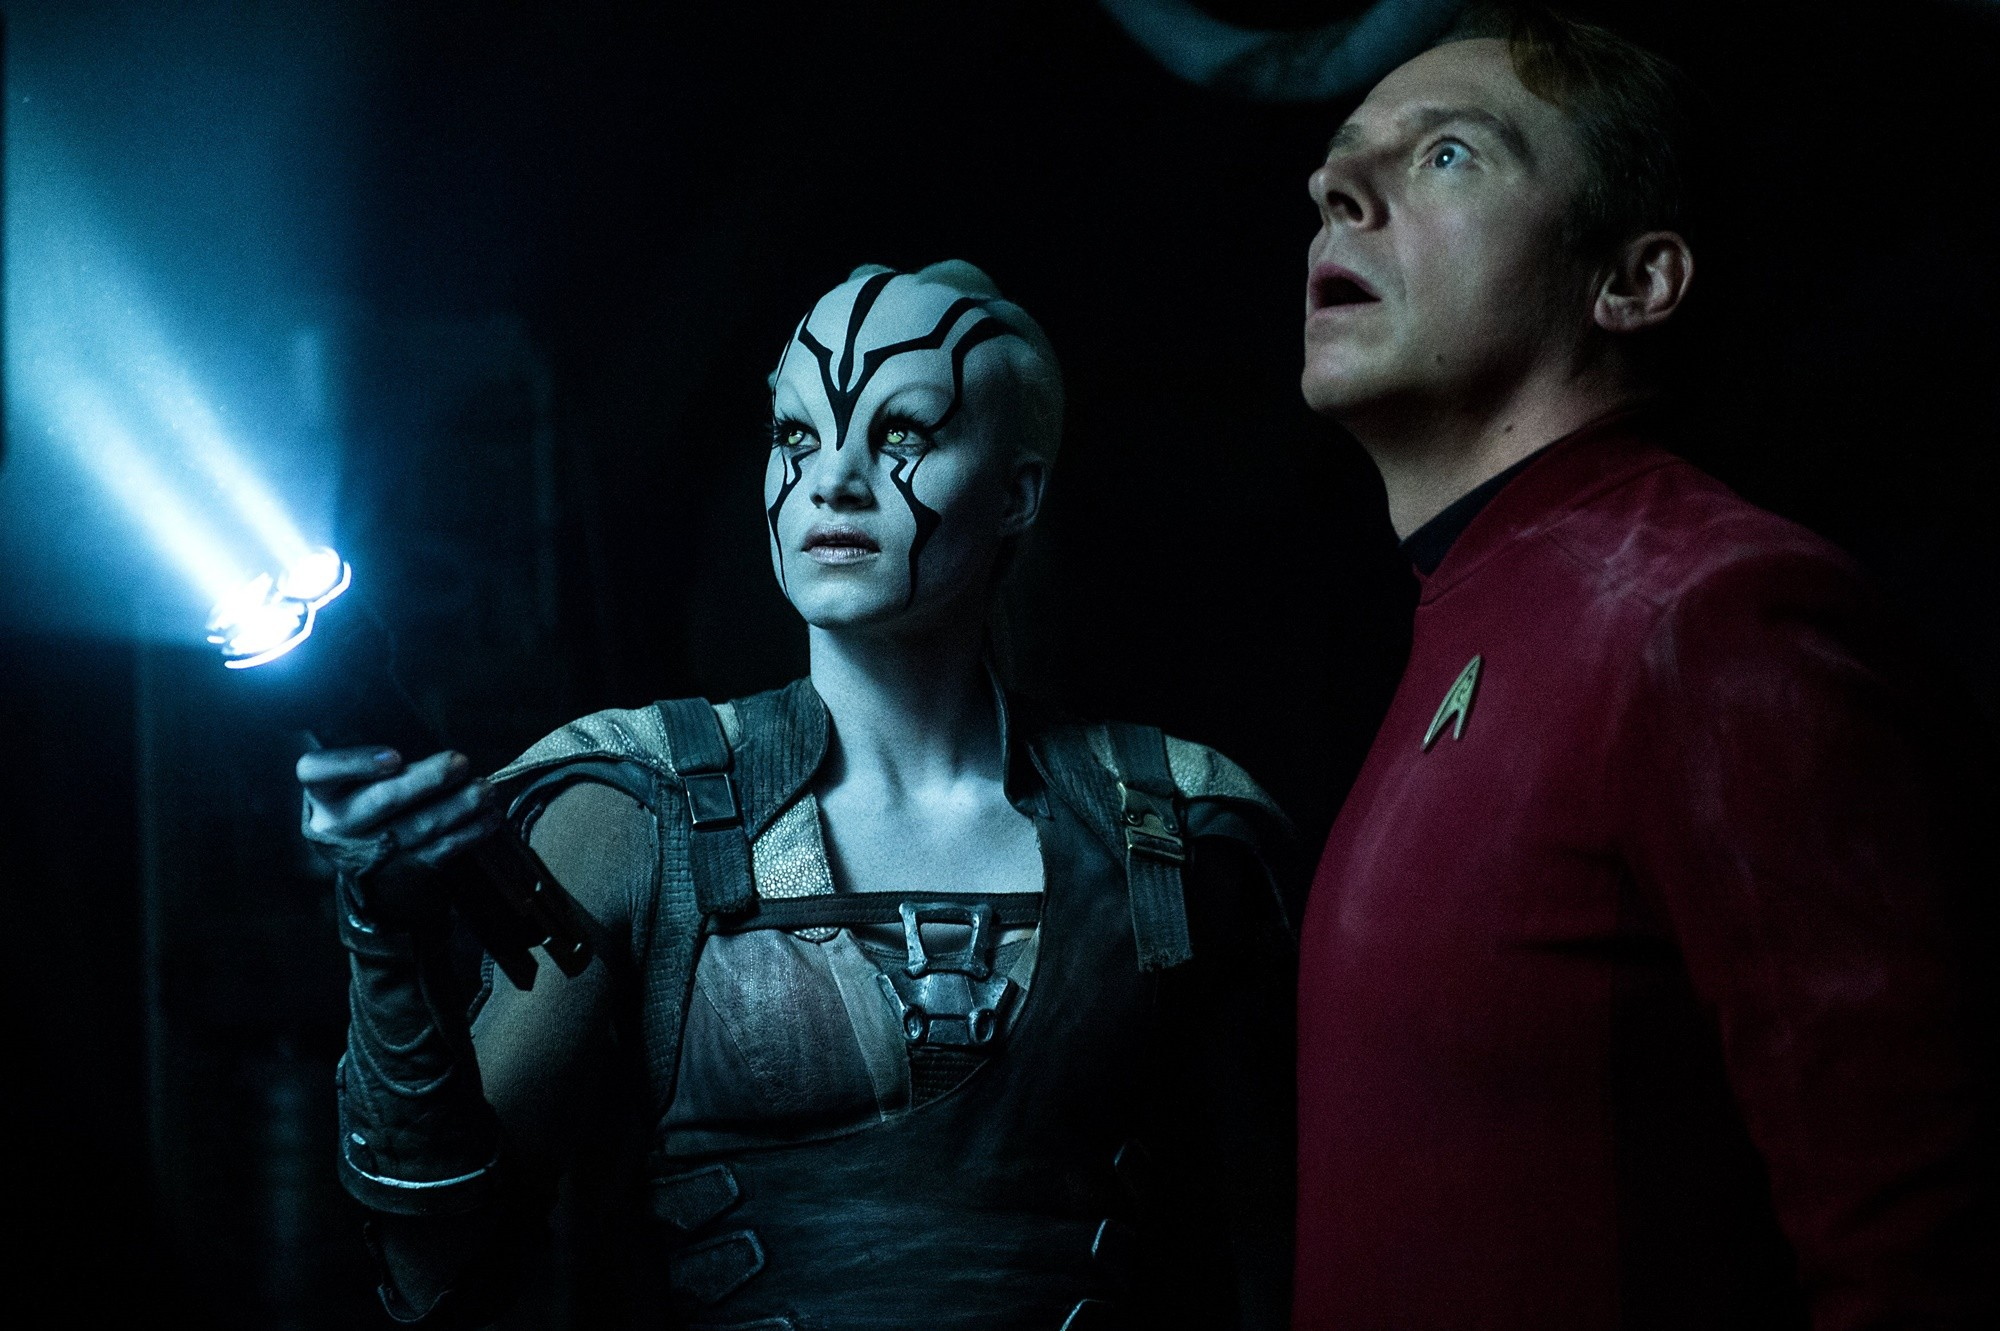 https://i1.wp.com/www.aceshowbiz.com/images/still/star-trek-beyond10.jpg